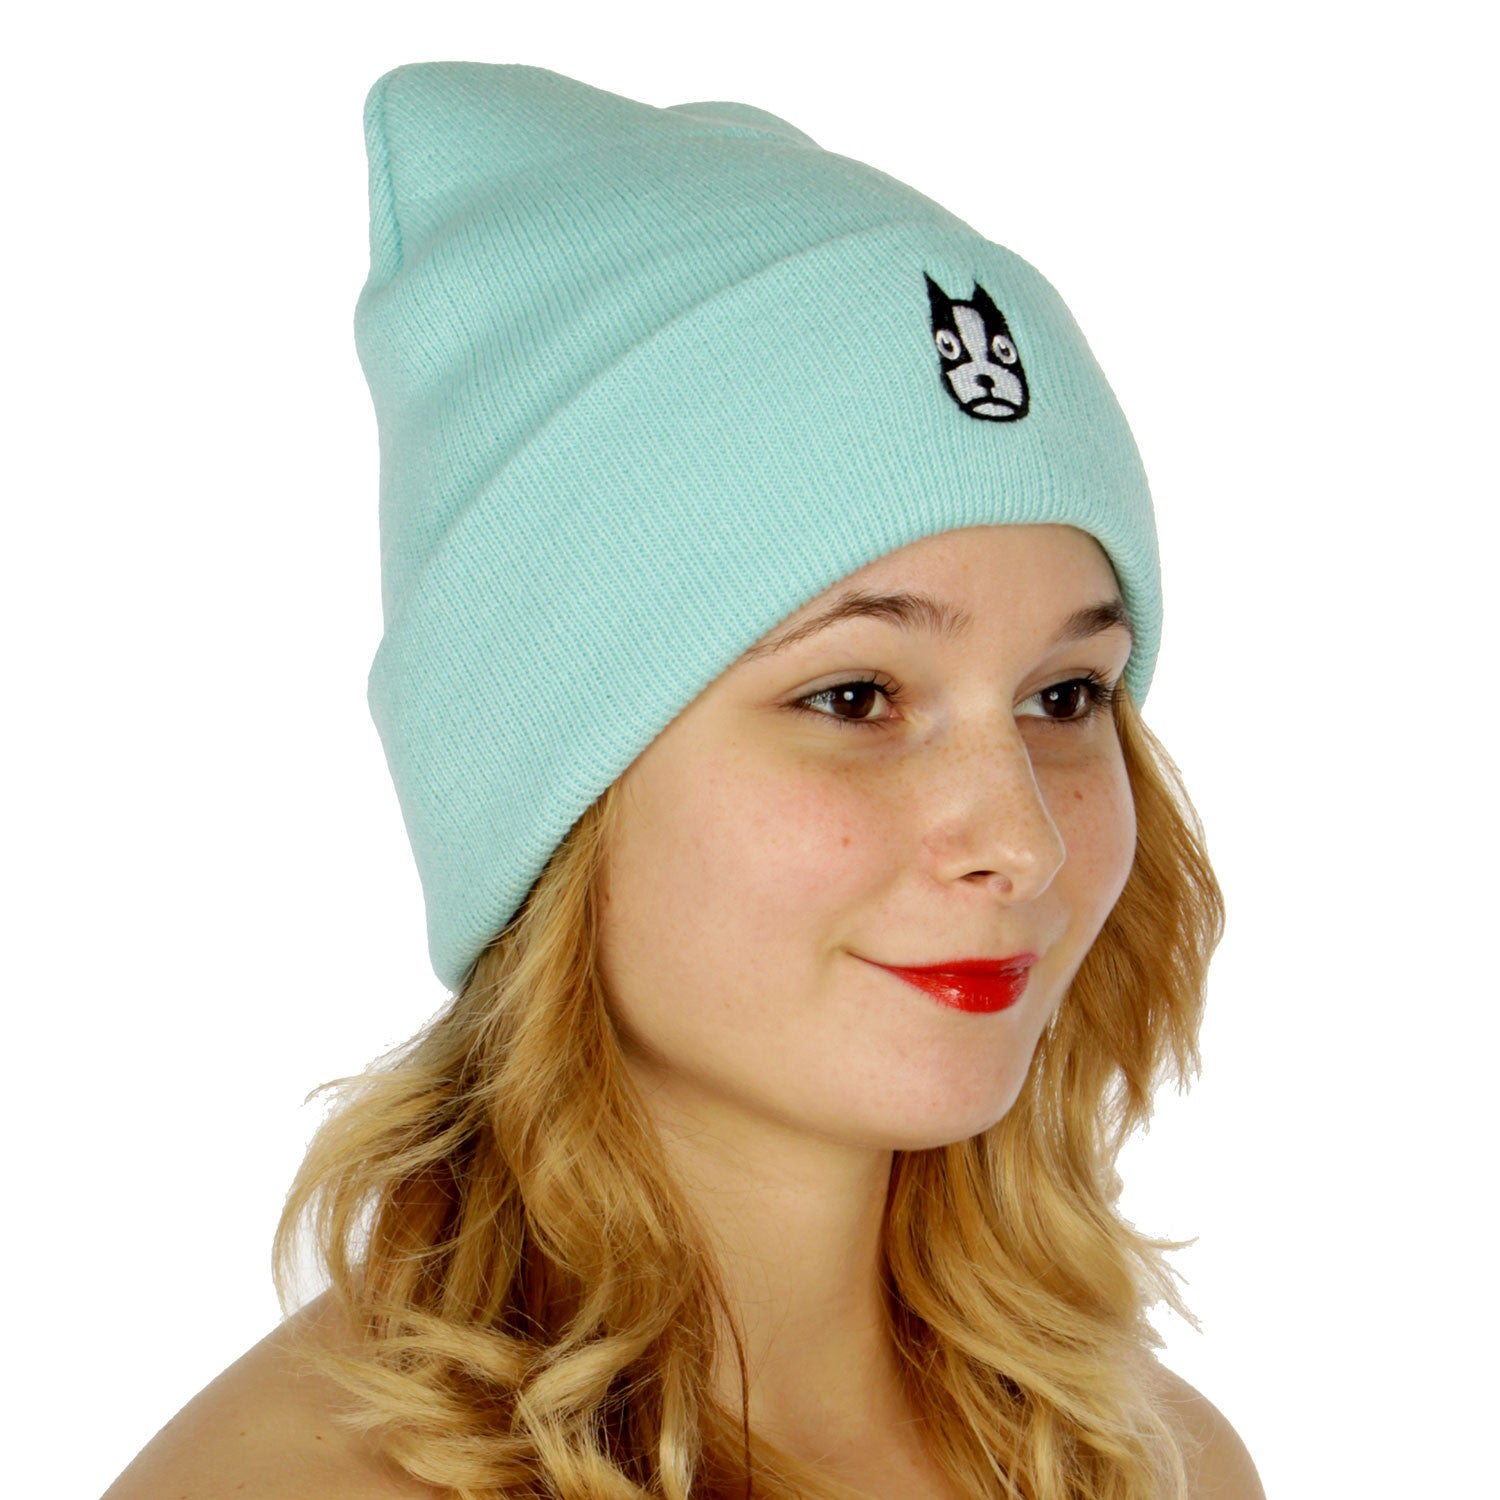 Cute Dog Embroidered Unisex Beanie